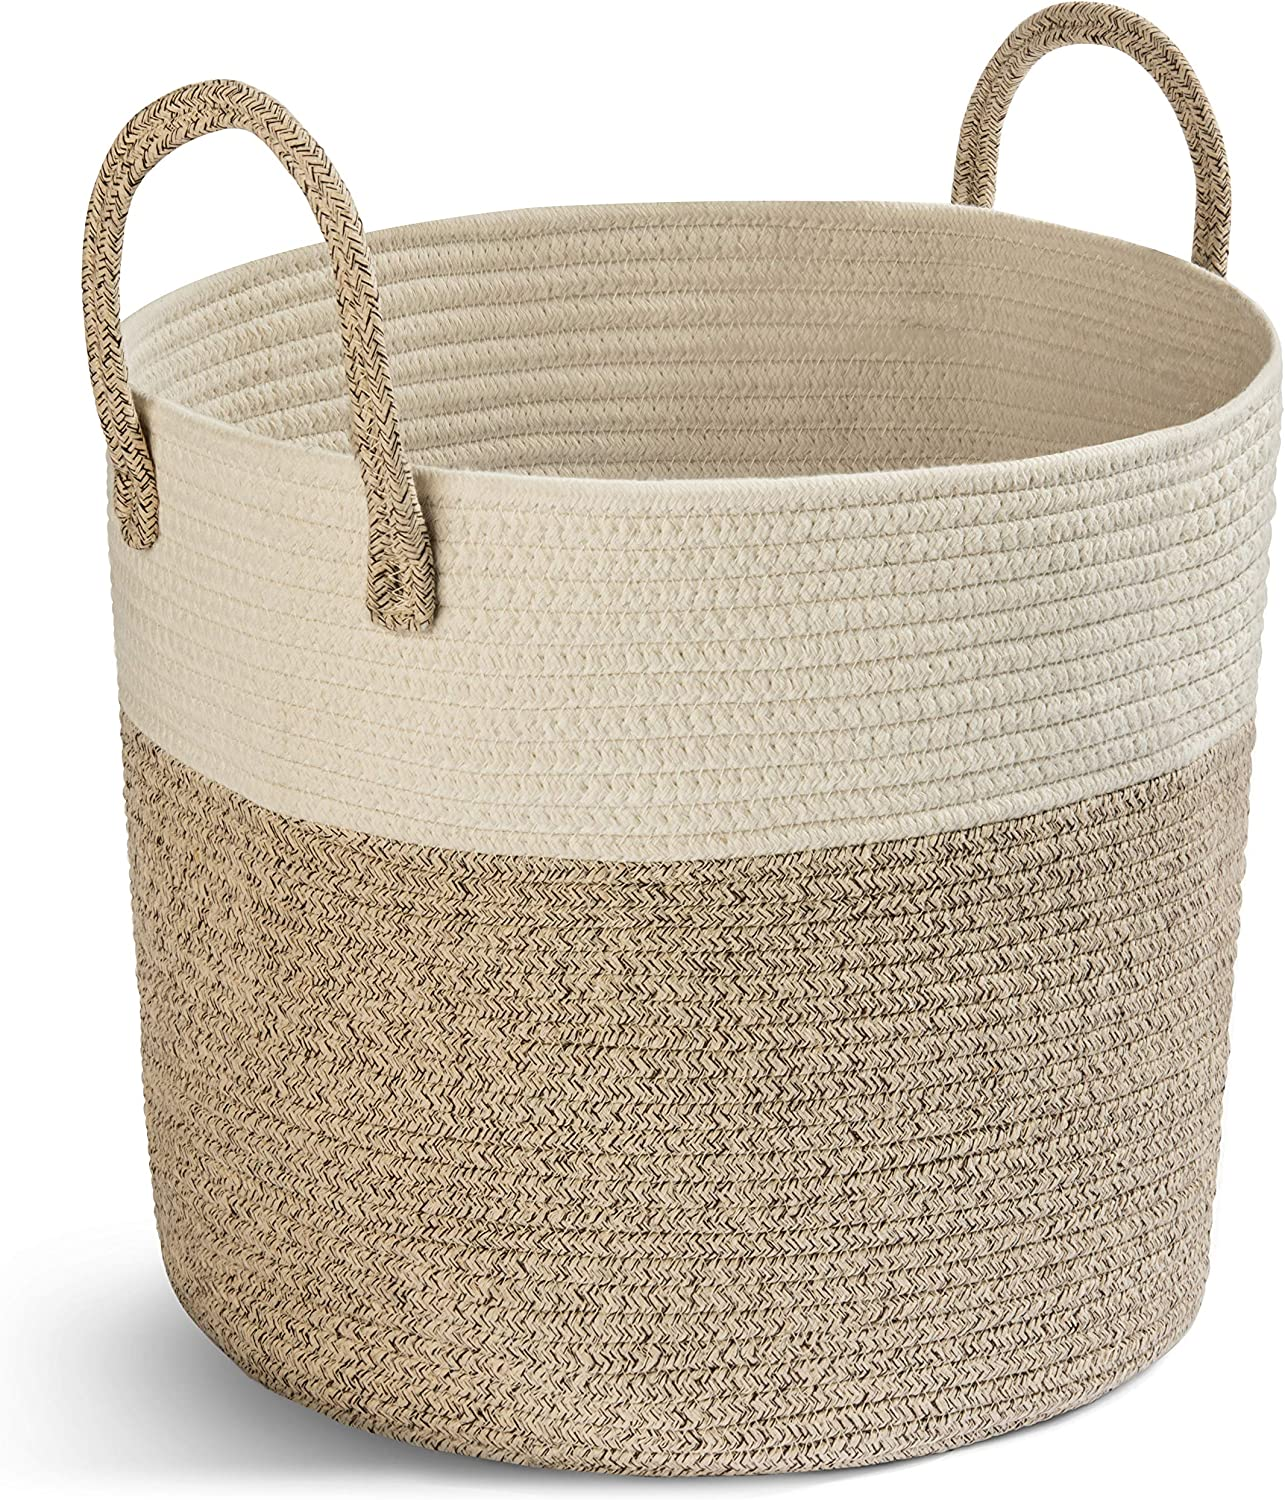 Shu Baby Woven Storage Basket - Large Cotton Rope Basket with Long Handles, Foldable Laundry Hamper, Toy Bin and Decorative Hamper (brown)